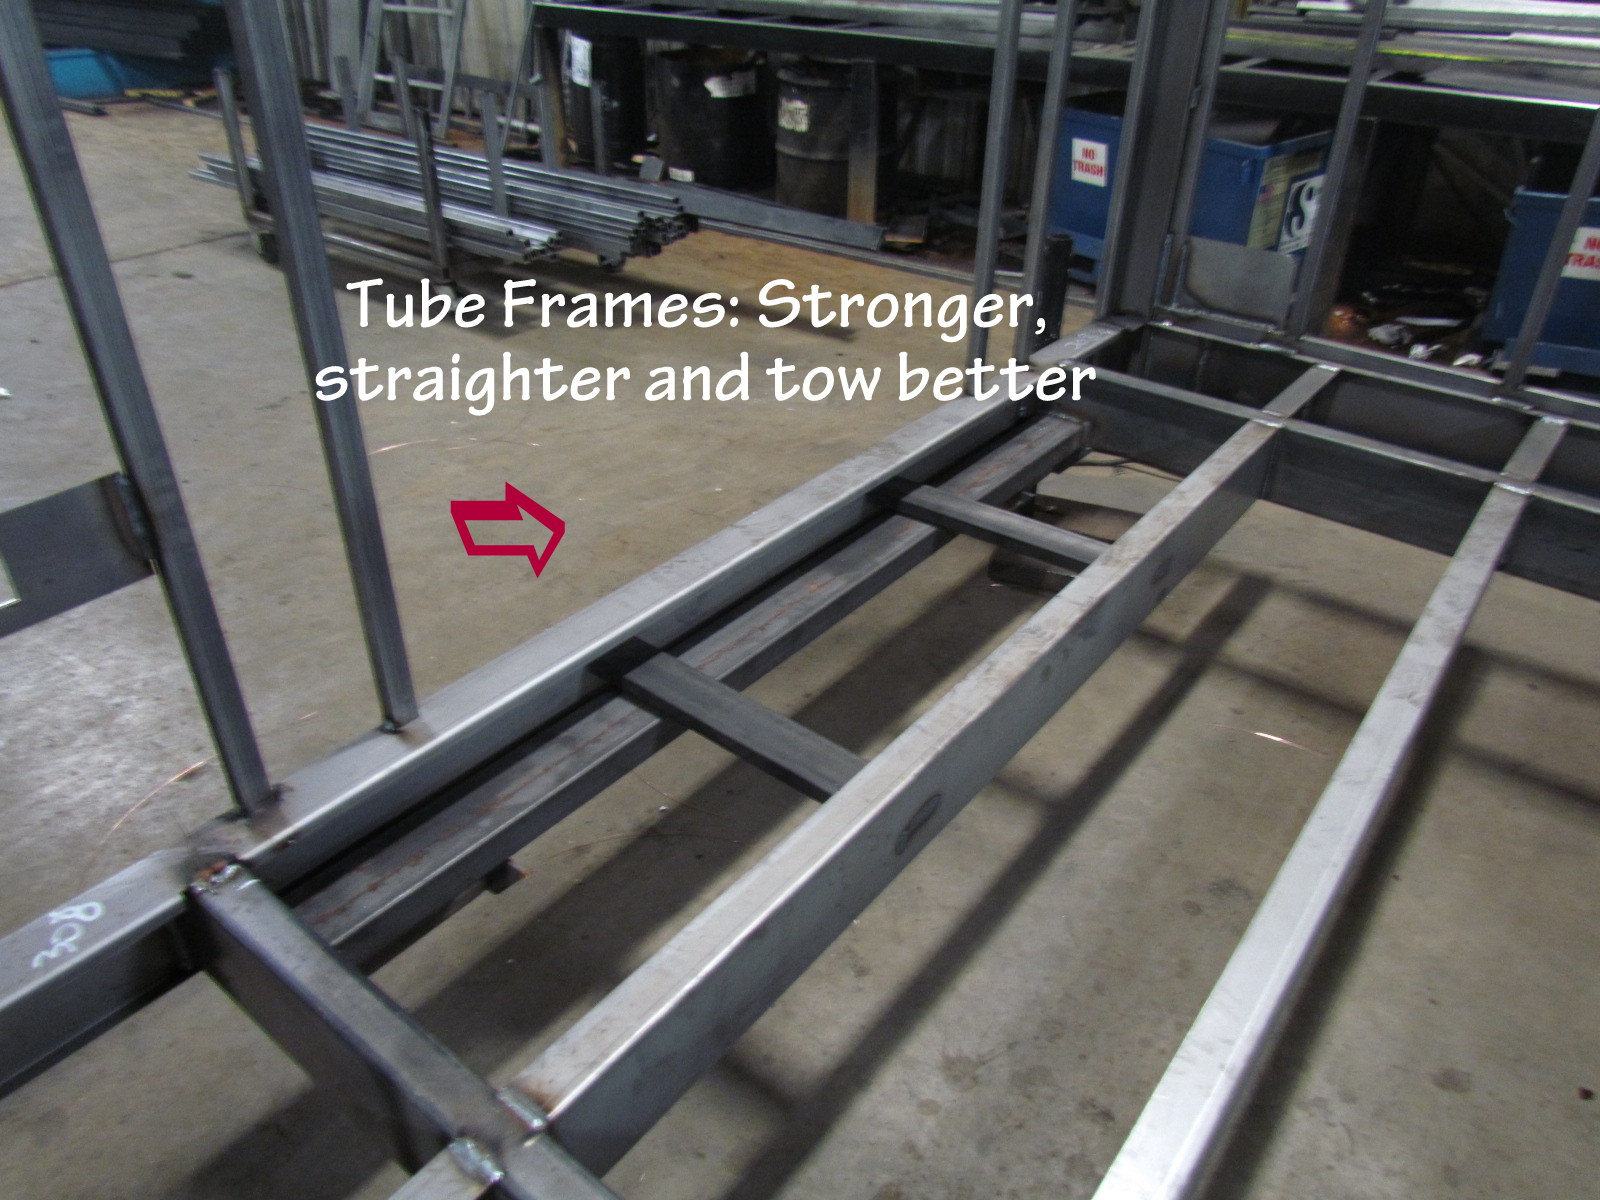 """Tube Frames: Tube main frames that are stronger, straighter and tow better Protected Wiring: In frame wiring offers protection from road debris & weather Roof Flashing: Roof flashing at critical joints, hi-tech roof sealant  Steel Backers: Exterior side wall lighting & door hold backs mounted in a steel backer Sealed Floors: Helps keep your valuable cargo dry. ¾"""" plywood floors are fully sealed around the perimeter edges.  Primer: Painted areas on are prepped, primed and painted for longer lasting paint. Reinforced A Frames: Stronger, safer and longer lasting trailers Wheel Box Structure: All 8.5' wide trailer sidewalls include 1"""" x 3"""" tubing across the top connected to 1"""" x 3"""" tubing running vertically"""